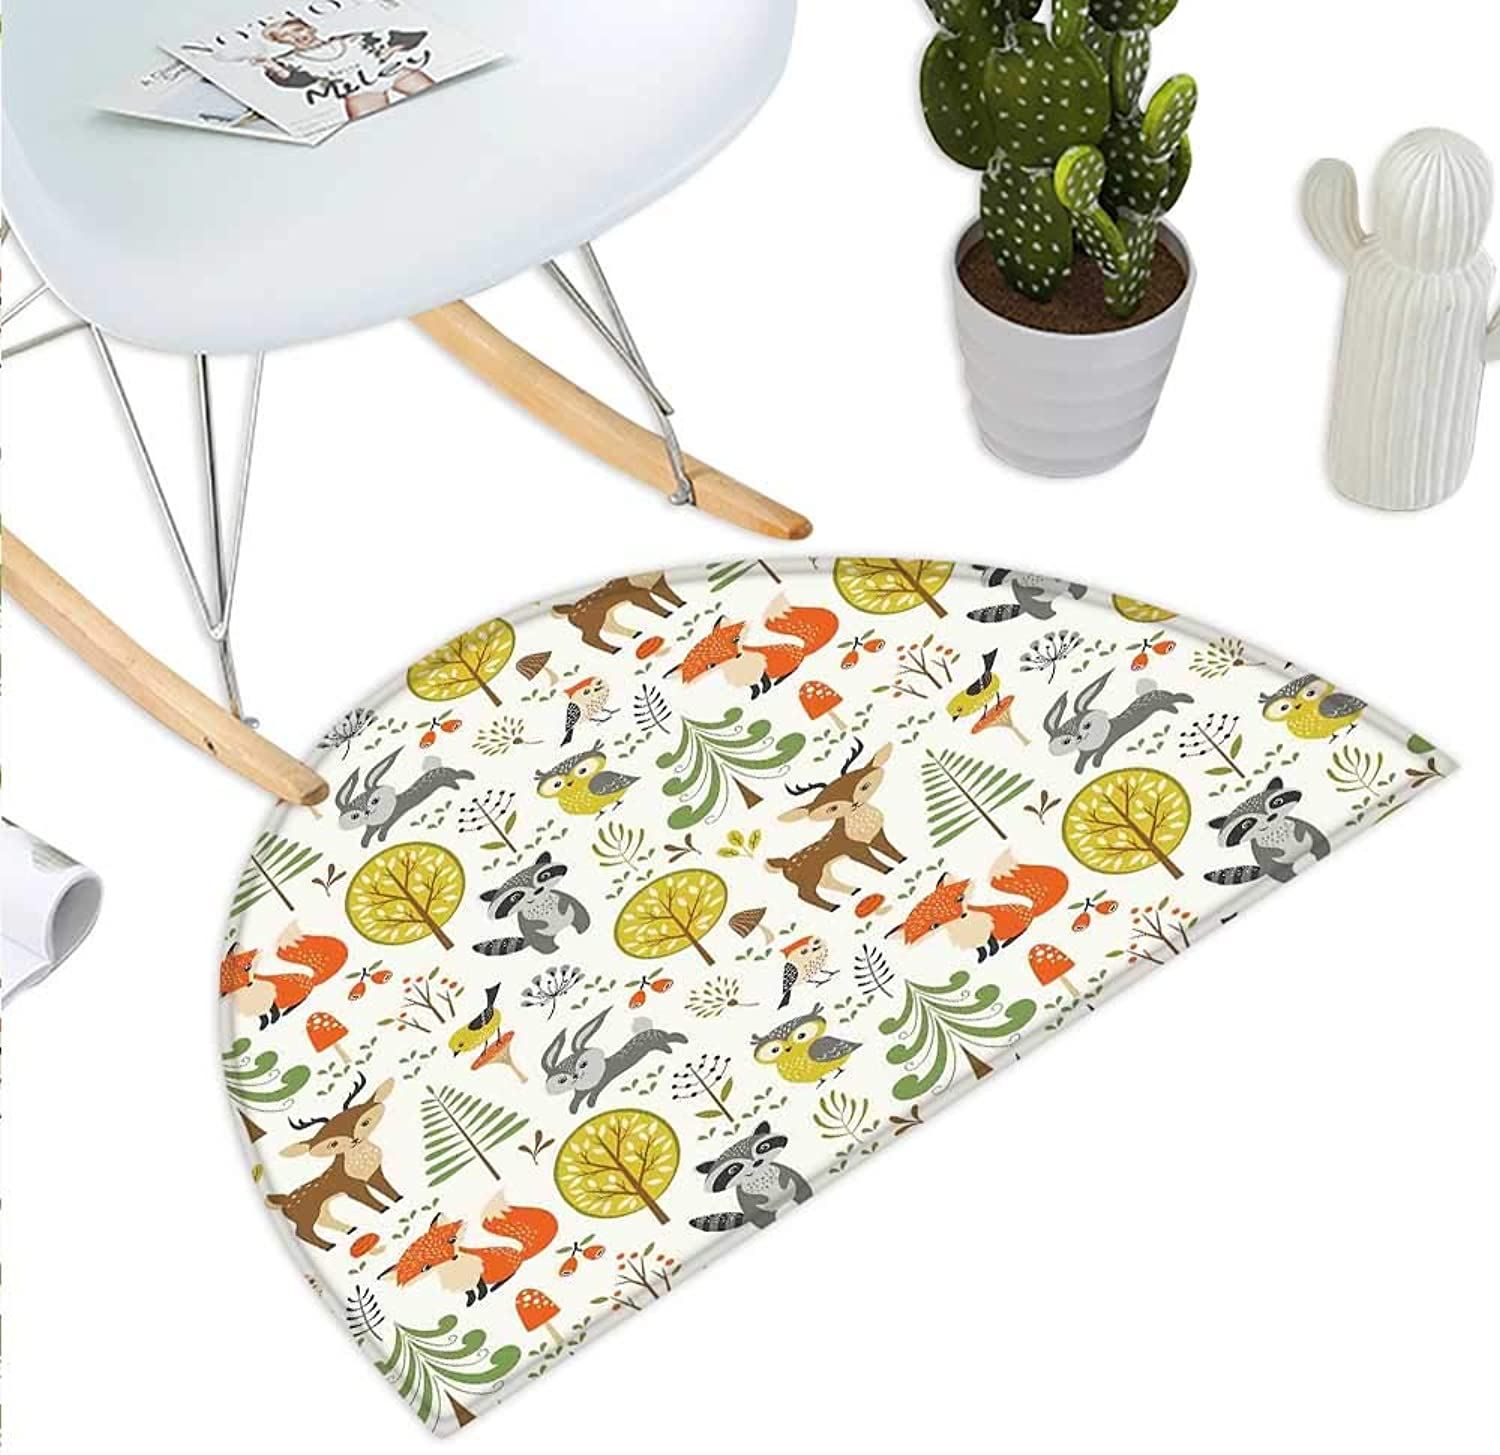 Kids Semicircle Doormat Woodland Forest Animals Trees Birds Owls Fox Bunny Deer Raccoon Mushroom Home and Halfmoon doormats H 43.3  xD 64.9